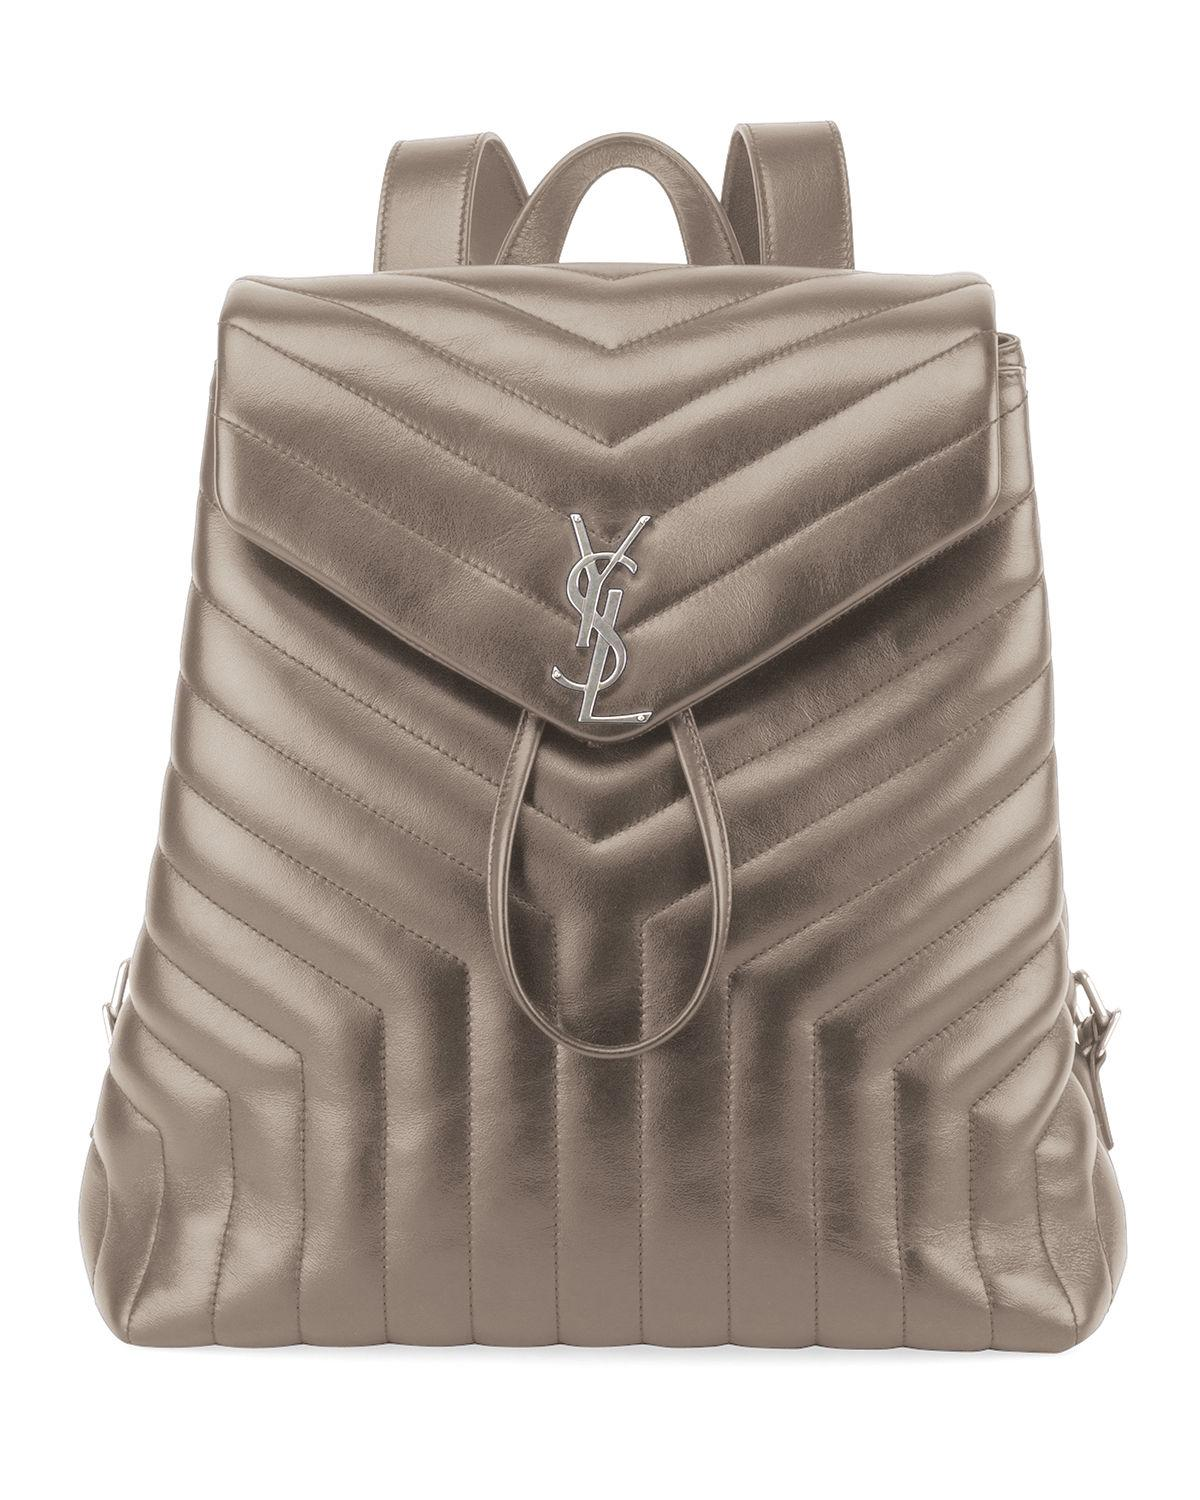 aacac62fd46 Saint Laurent Loulou Monogram Ysl Medium Quilted Leather Backpack In Storm